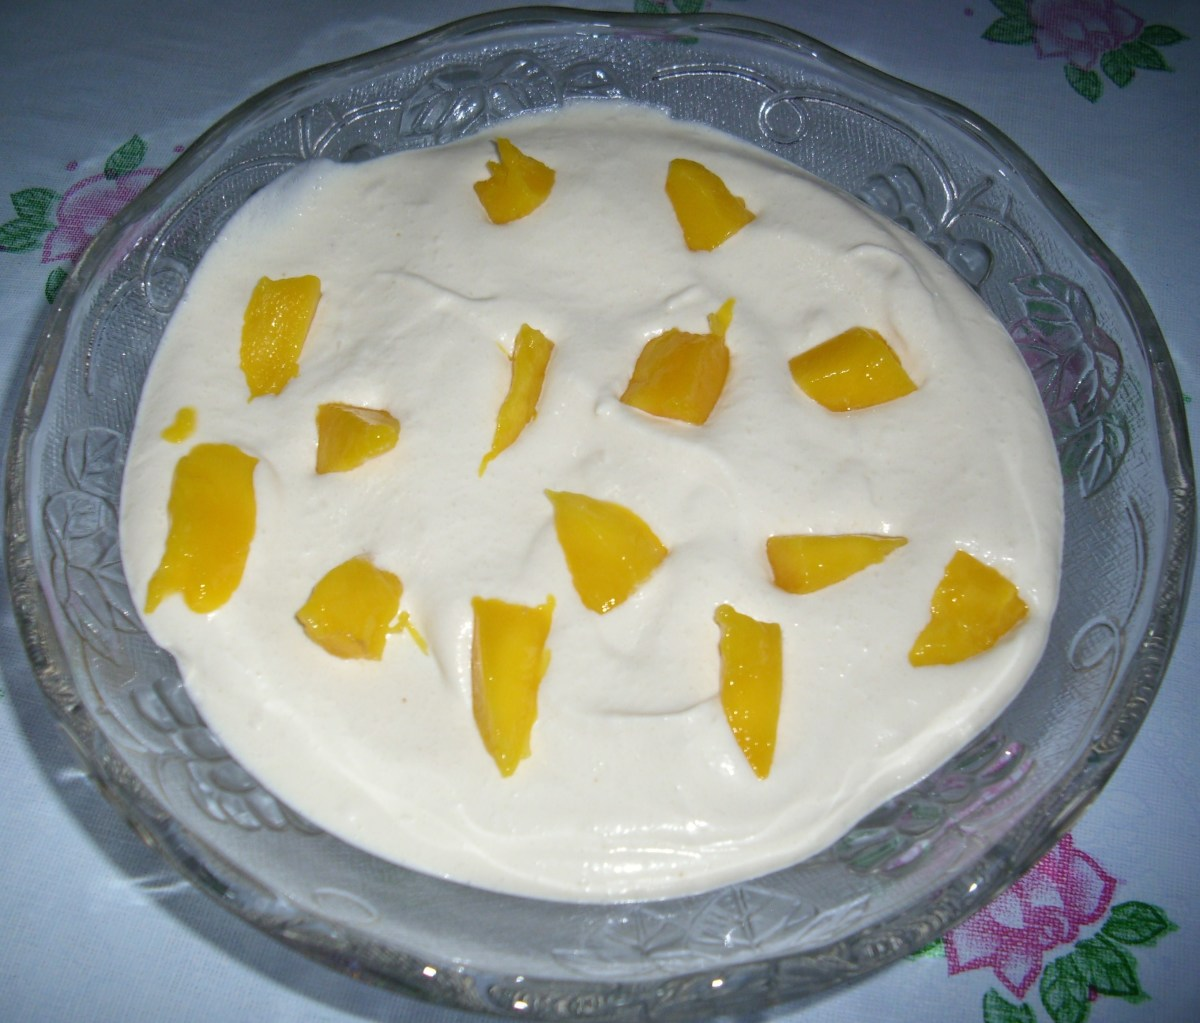 Add mango slices and cream mixture. Then decorate with small slices of mangoes.